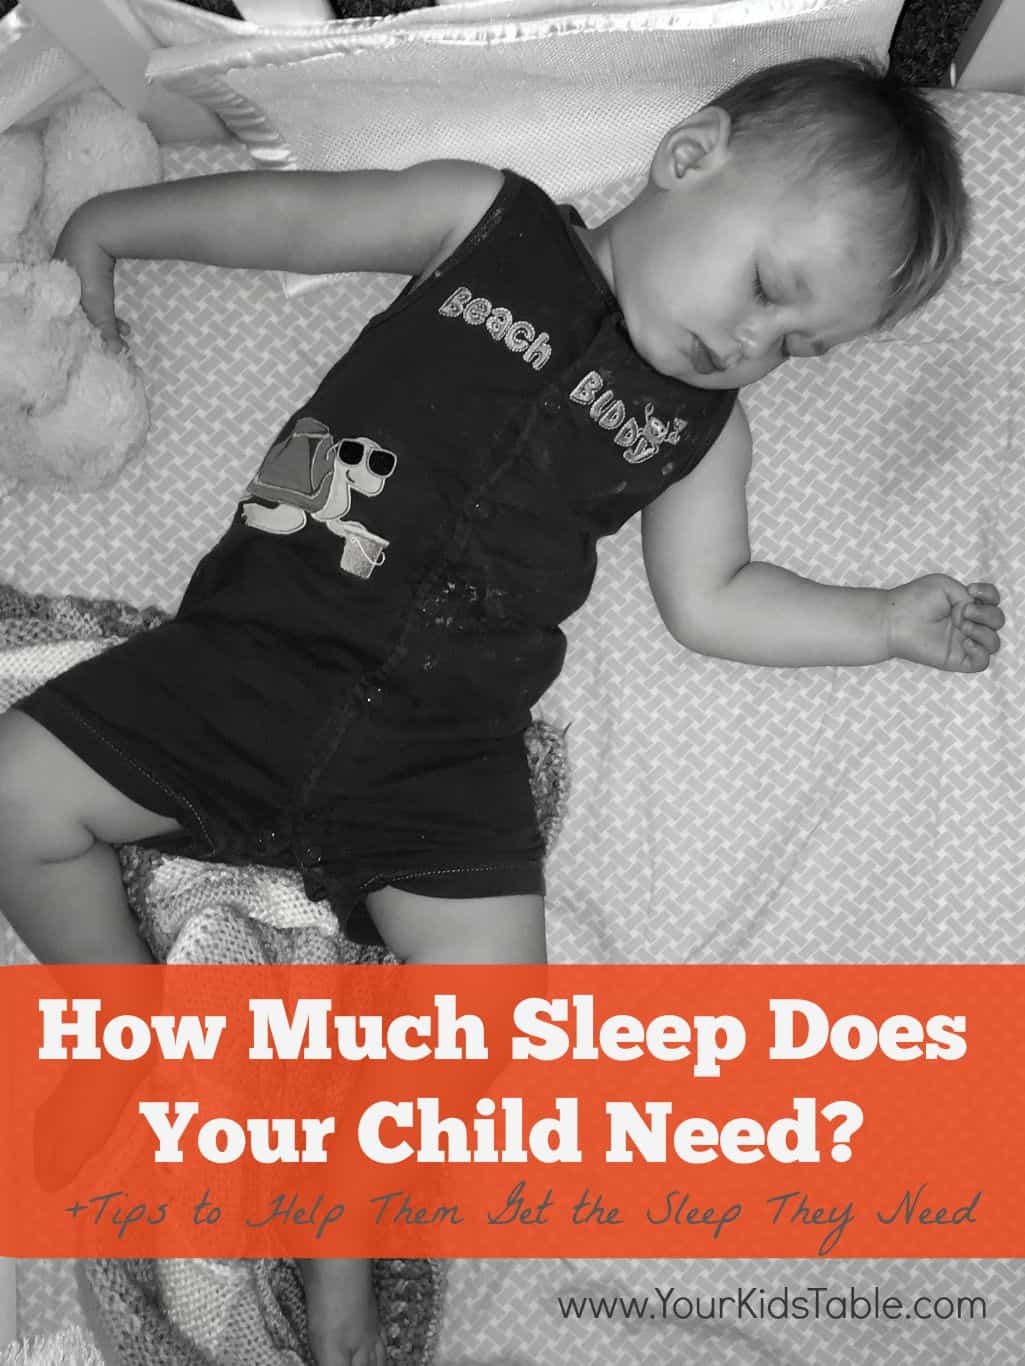 How Much Sleep Does Your Child Need?